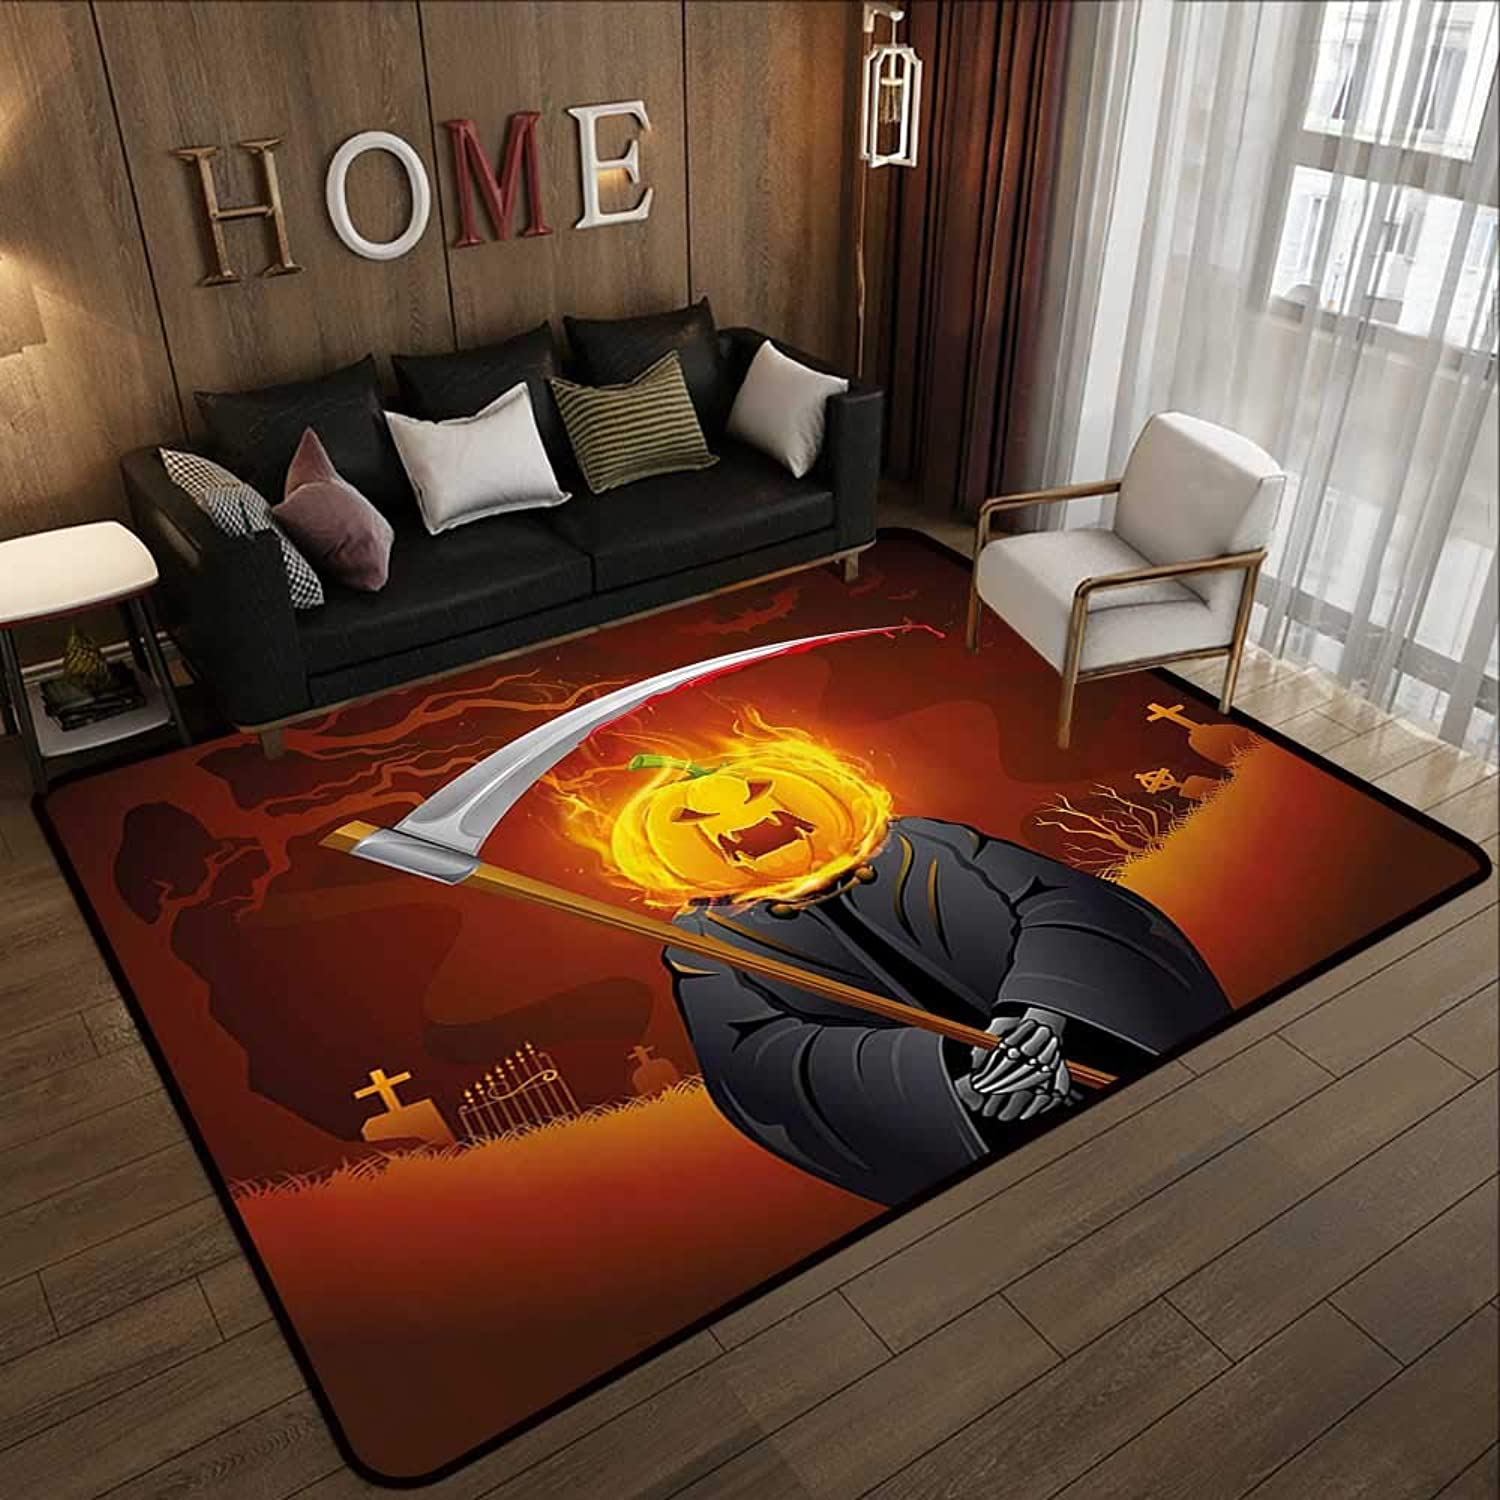 Carpet mat,Halloween Decorations,Pumpkin Grim Head Burning Flames Character Scary Creature Nightmare,orange Grey 55 x 63  Floor Mat Entrance Doormat